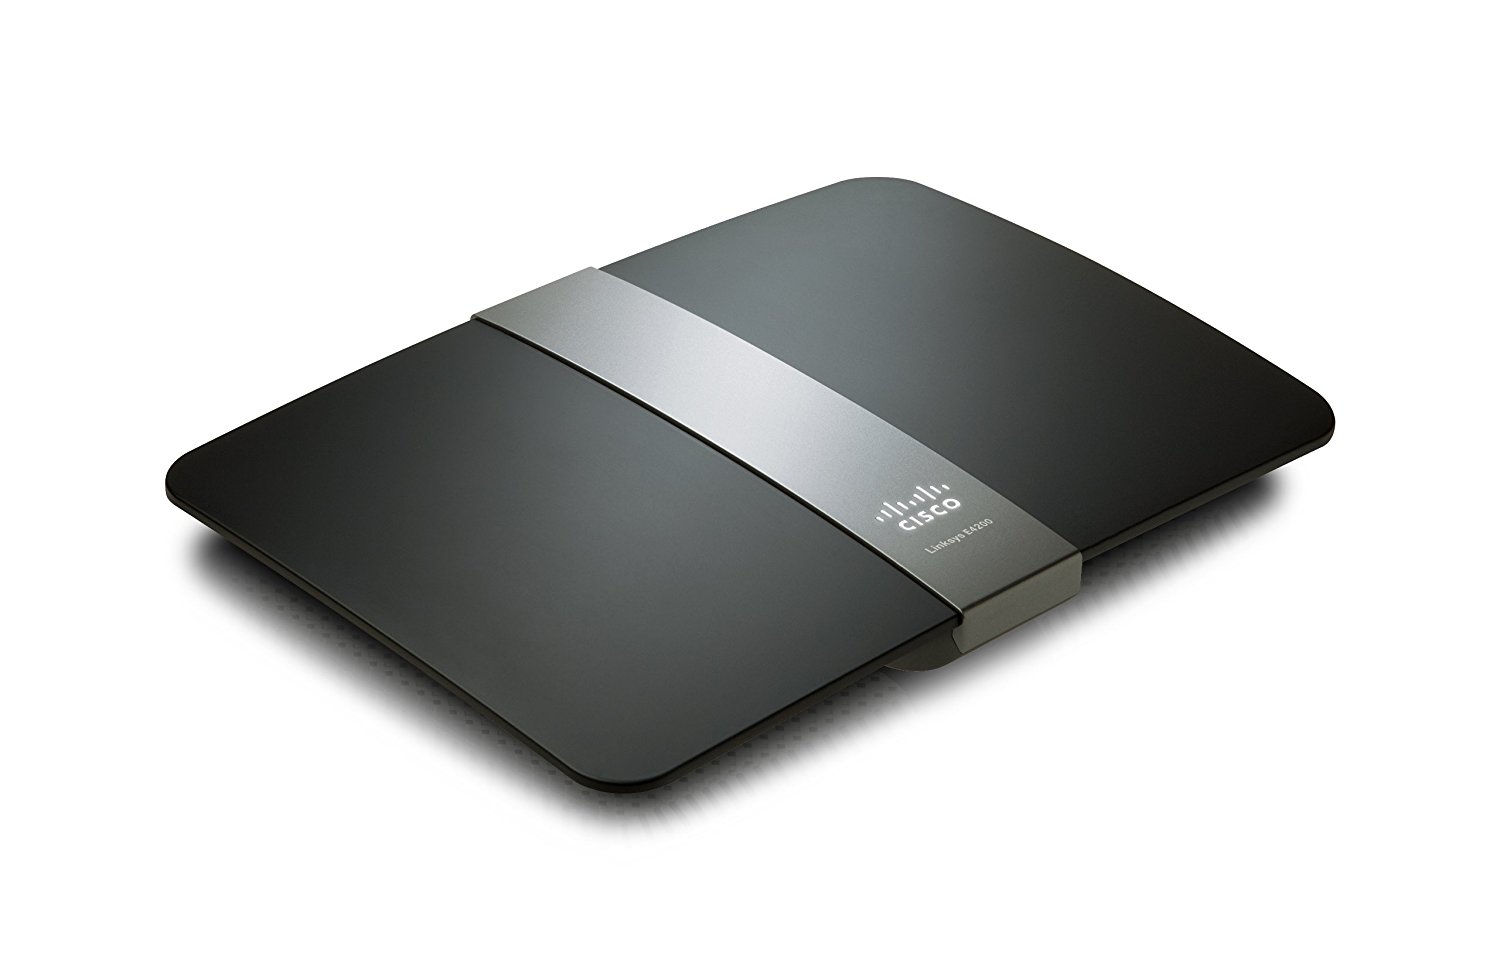 LINKSYS WIRELESS-N ROUTER Maximum Performance E4200